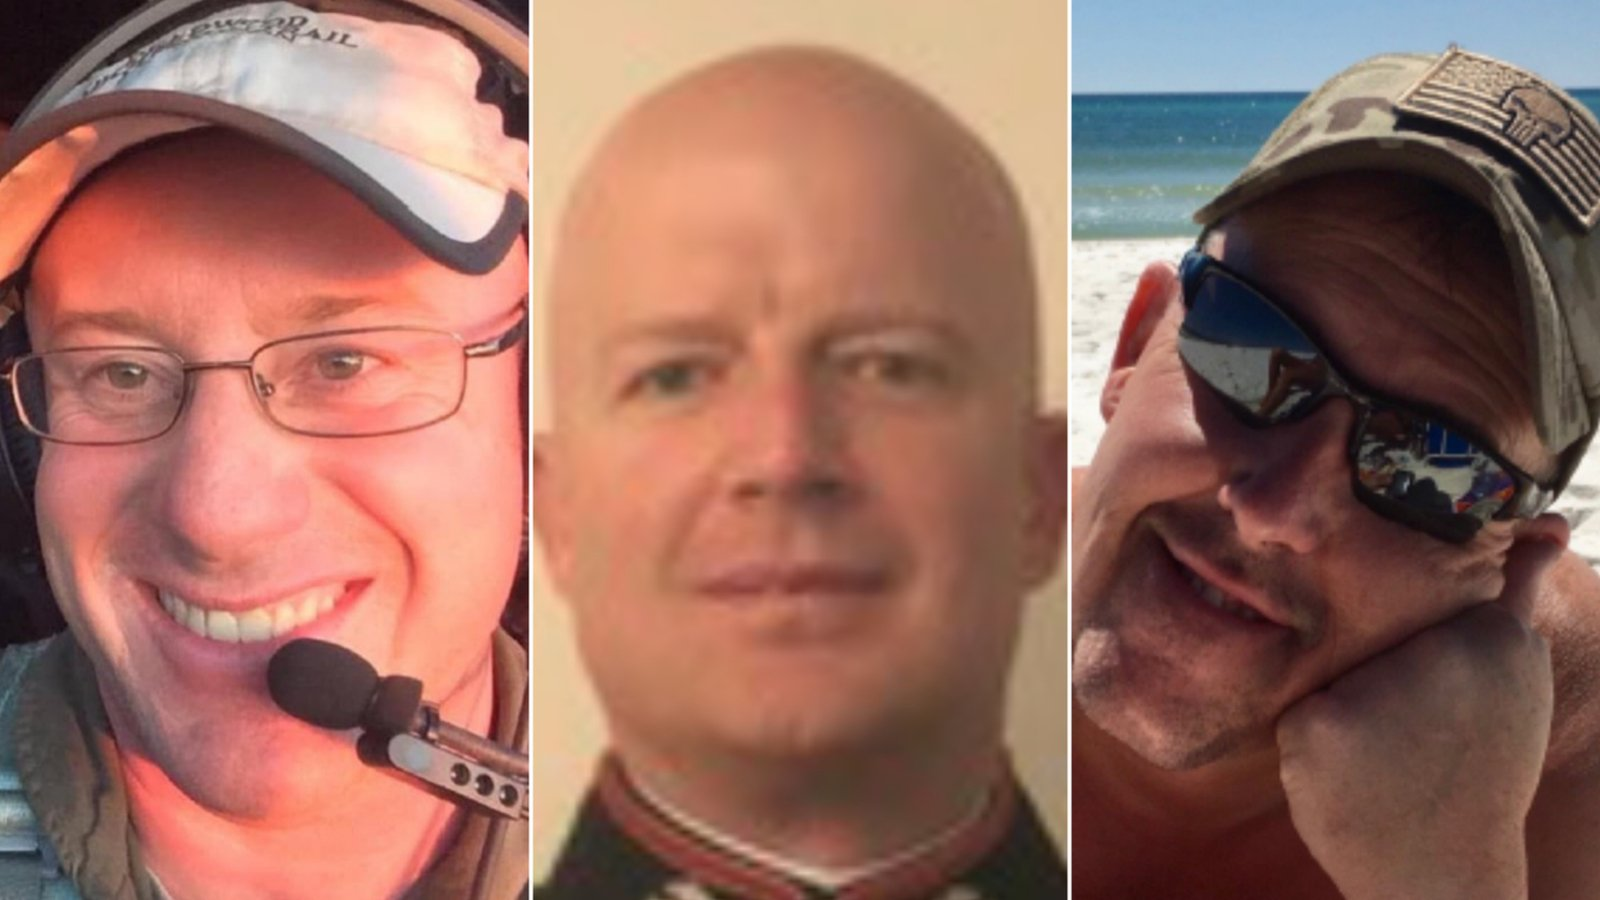 The three Americans who died fighting an Australian bushfire from the air have been identified as Capt. Ian McBeth, First Officer Paul Clyde Hudson and Flight Engineer Rick DeMorgan Jr. (Credit: CNN)